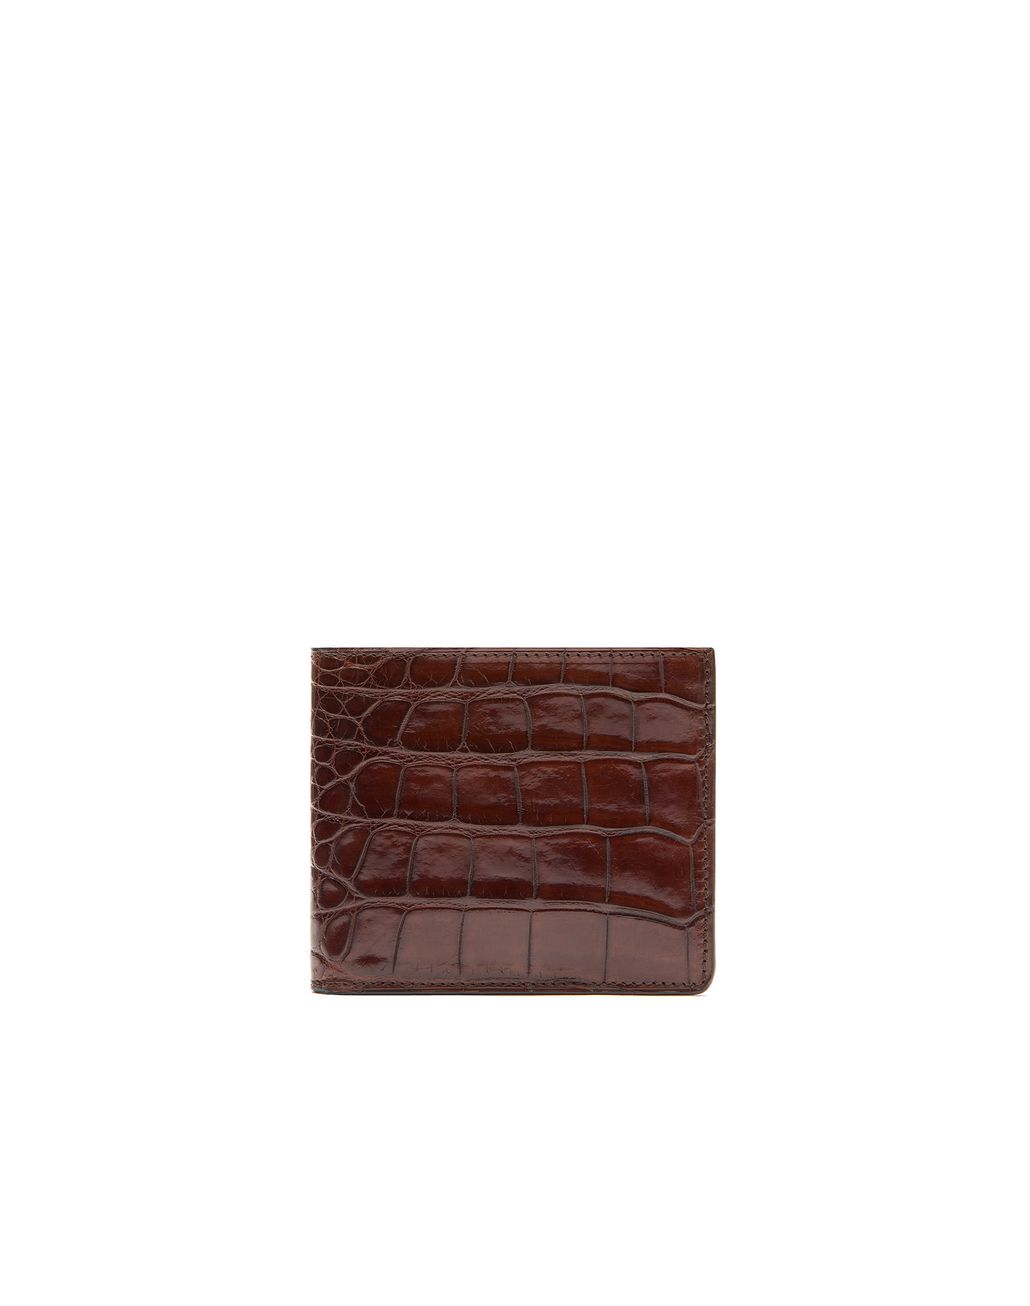 BRIONI Portafogli Slim in Alligatore Color Cognac Pelletteria [*** pickupInStoreShippingNotGuaranteed_info ***] f